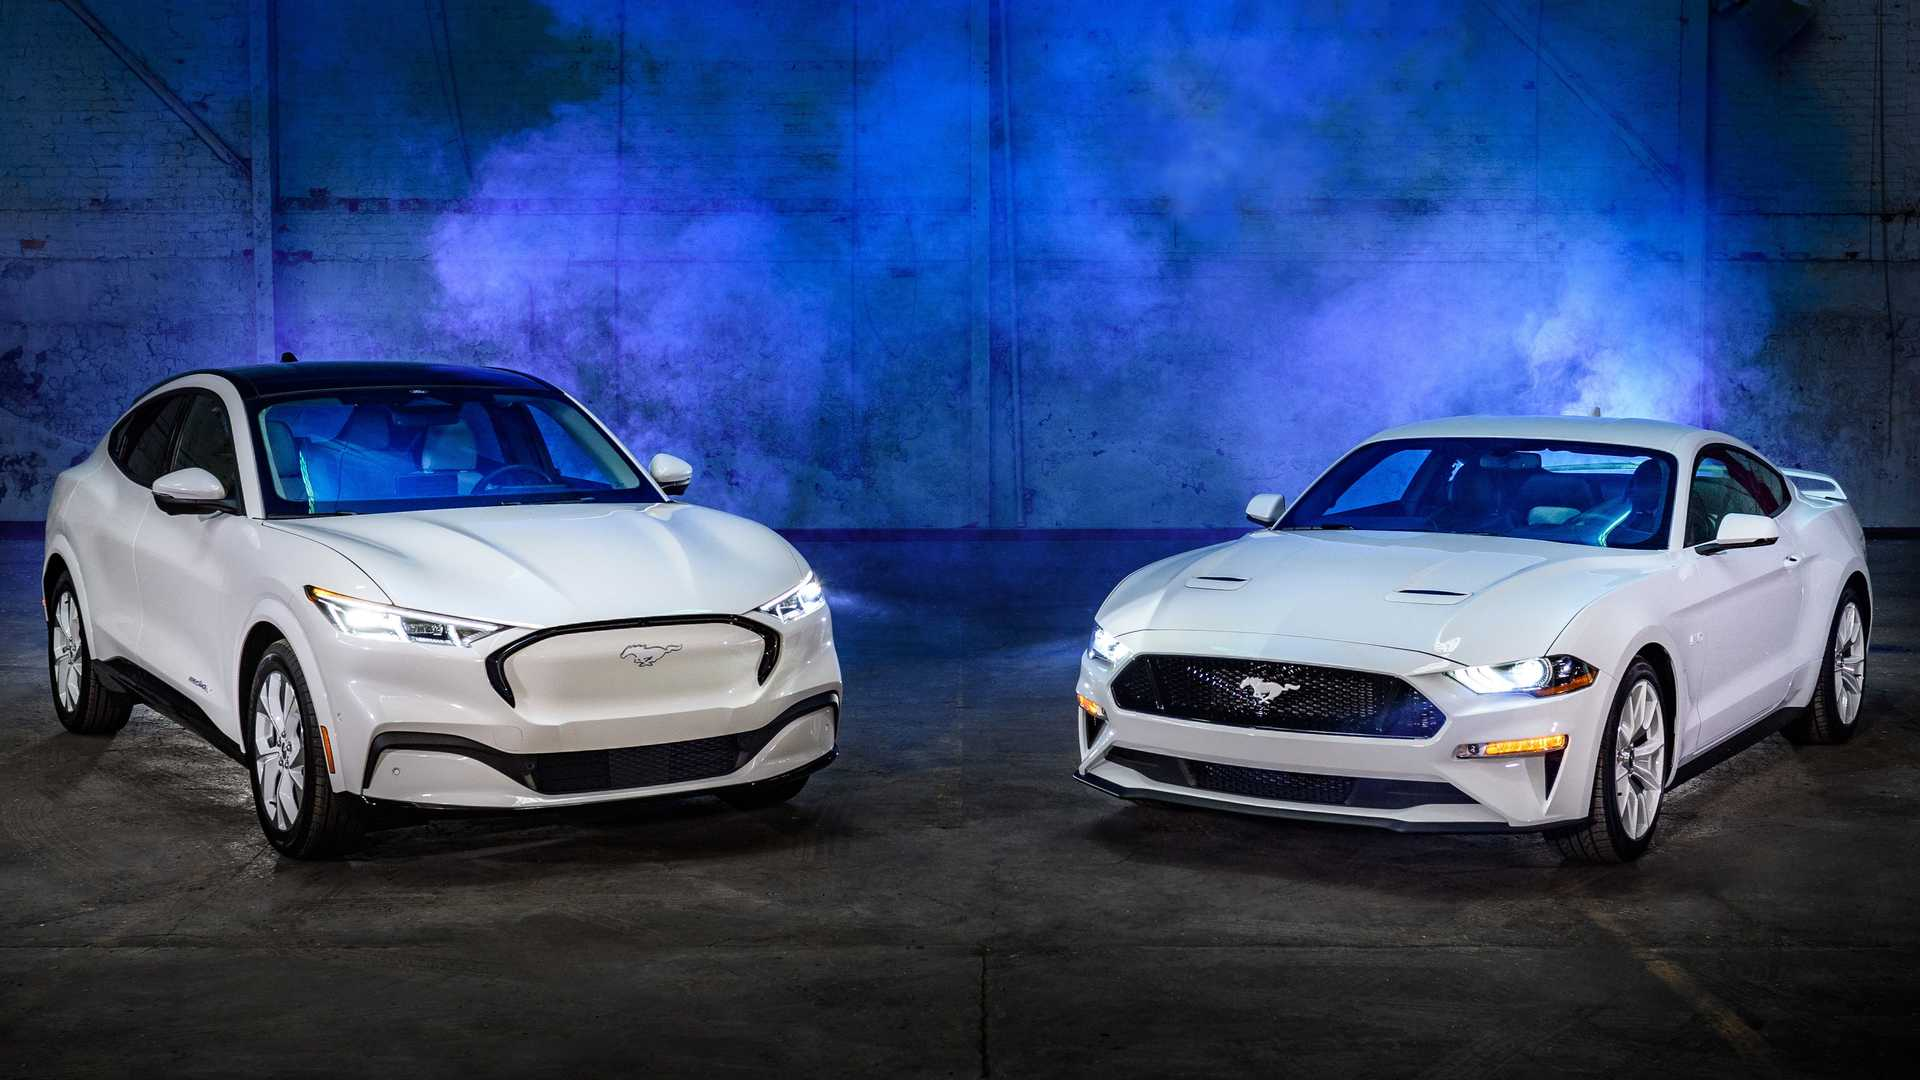 2022 Ford Mustang Mach-E Ice White Edition